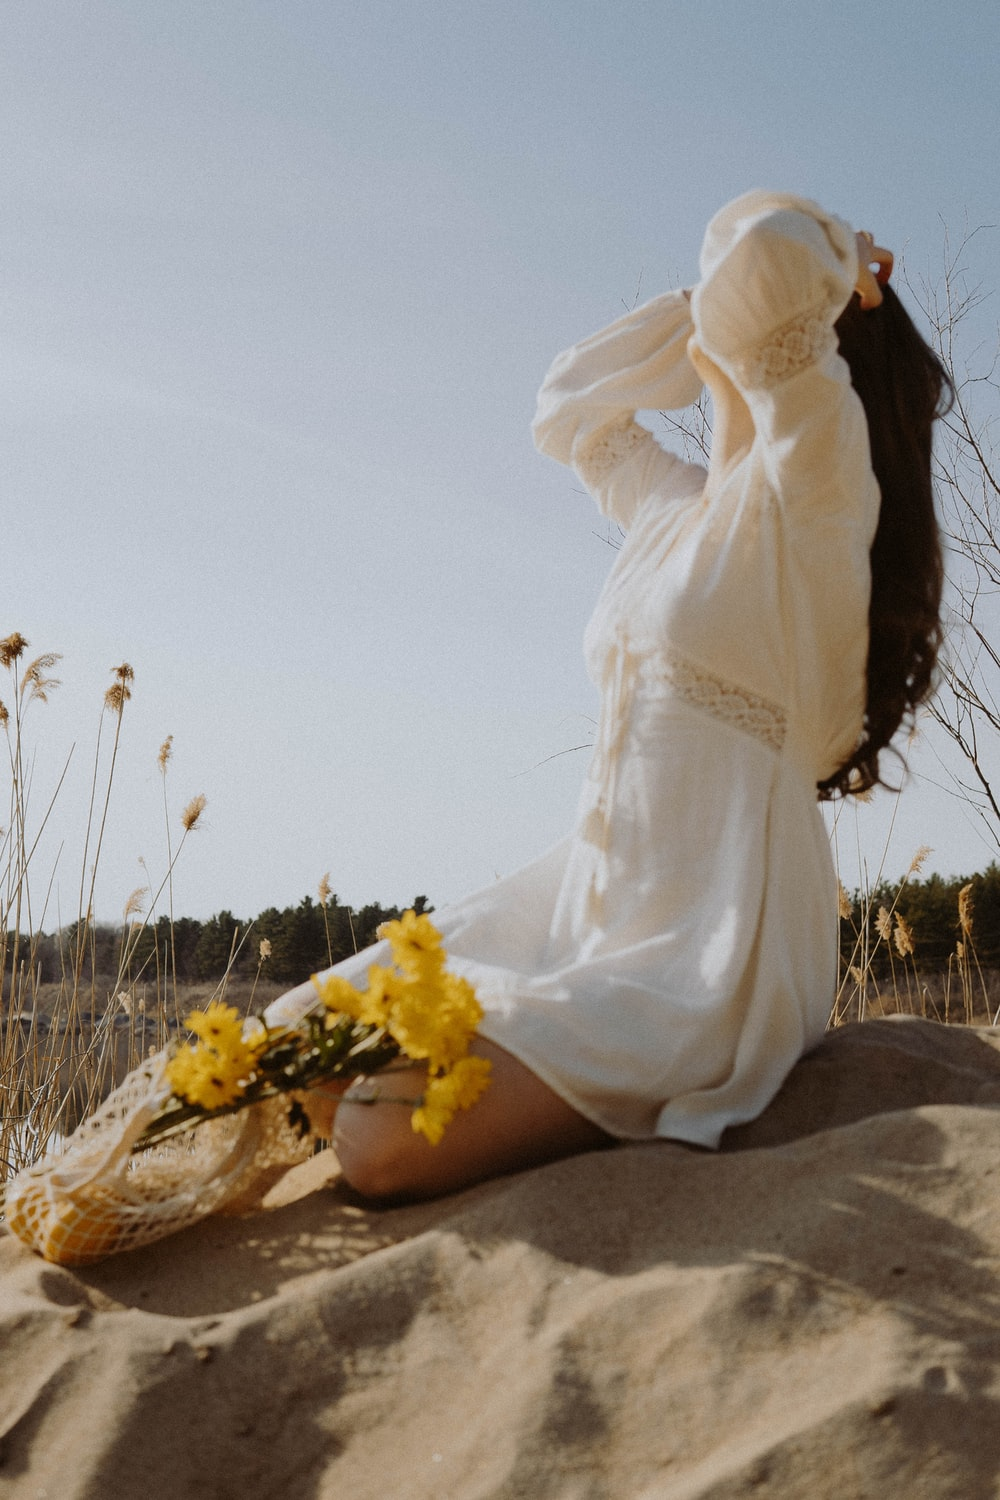 woman in white dress sitting on brown sand during daytime